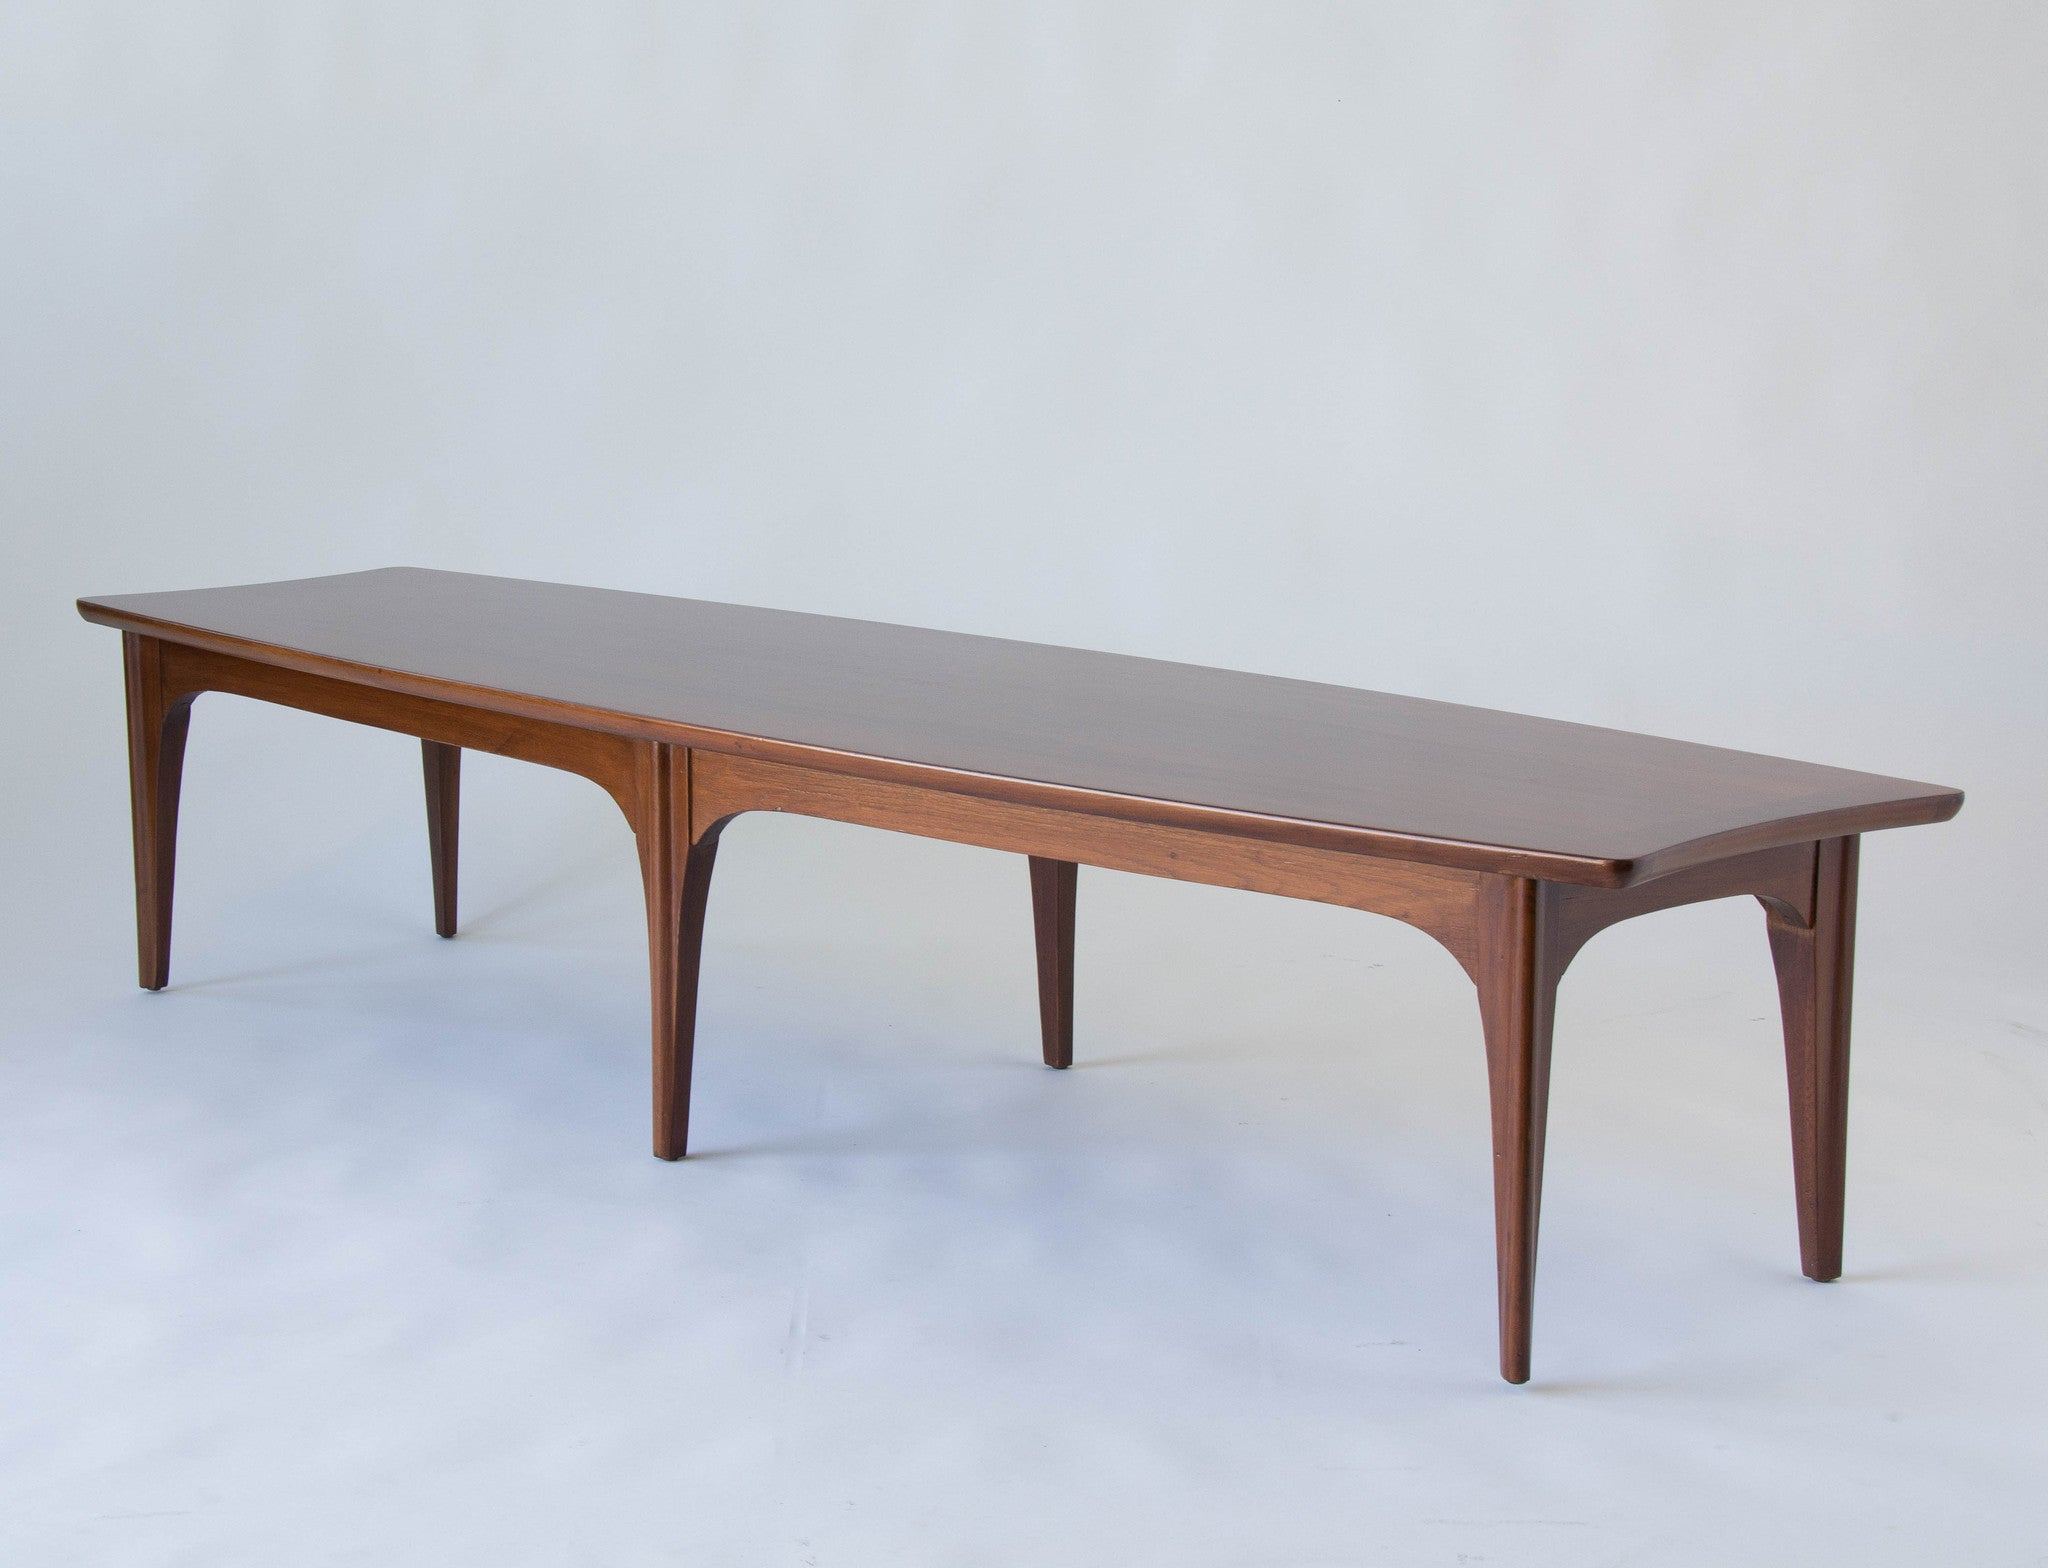 american made surfboard coffee table in walnut and rosewood – den